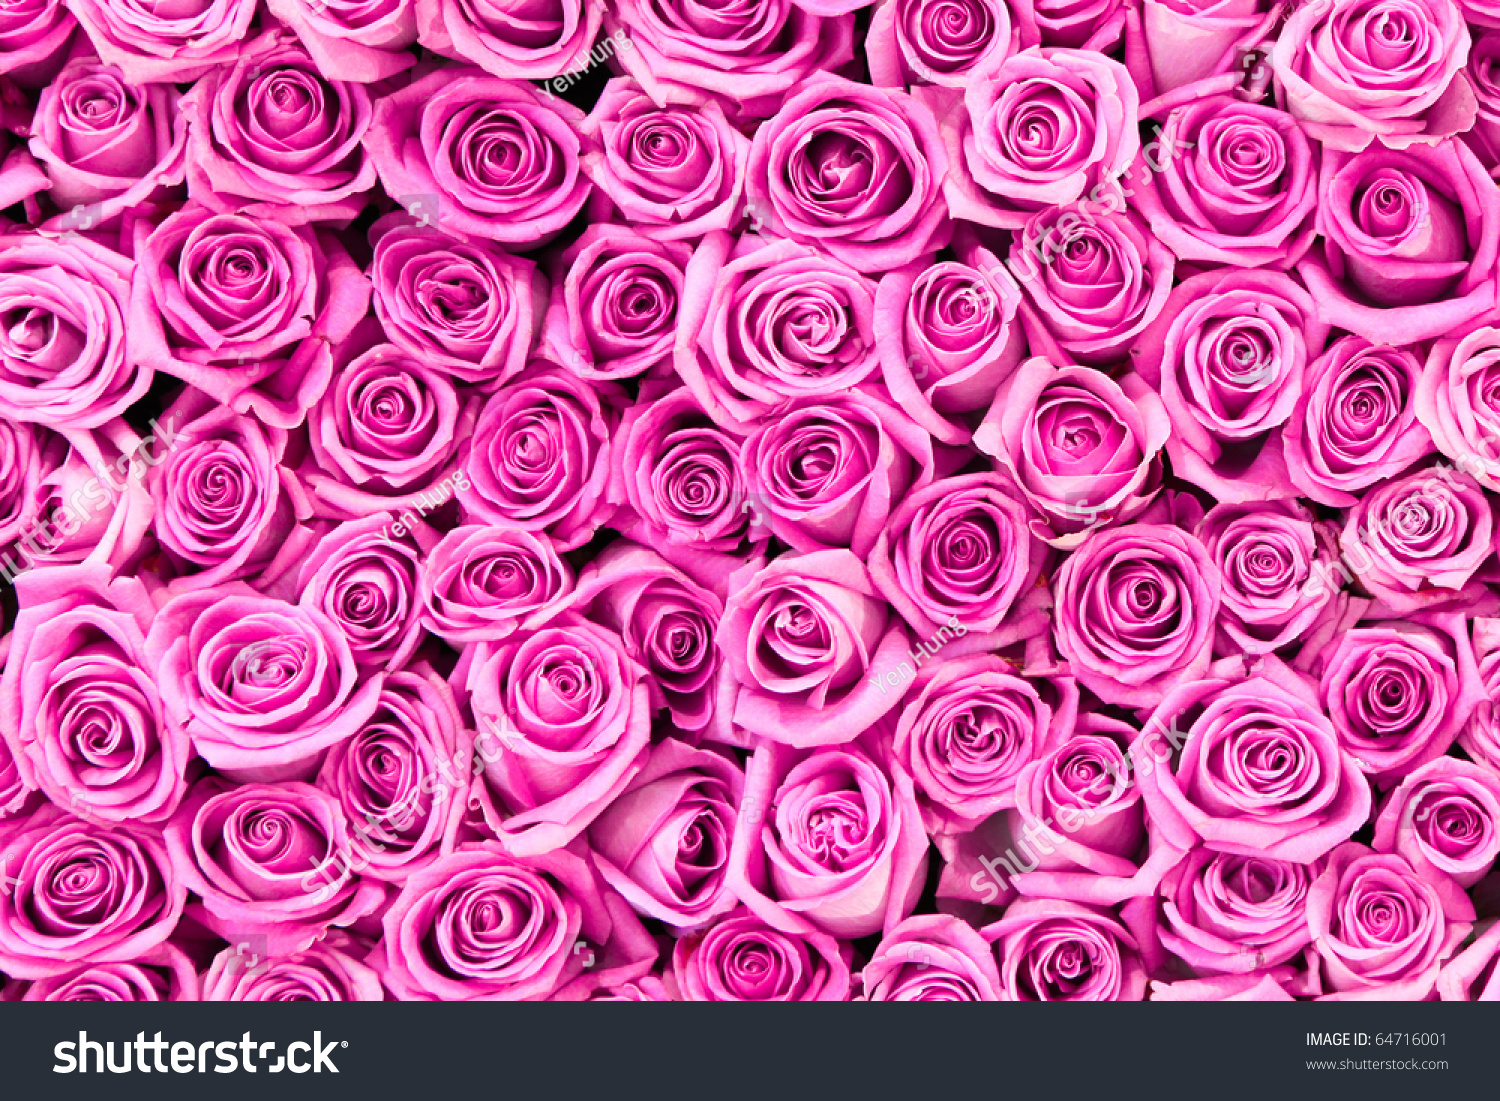 Beautiful Valentine Pink Rose Flowers Stockfoto (Lizenzfrei ...